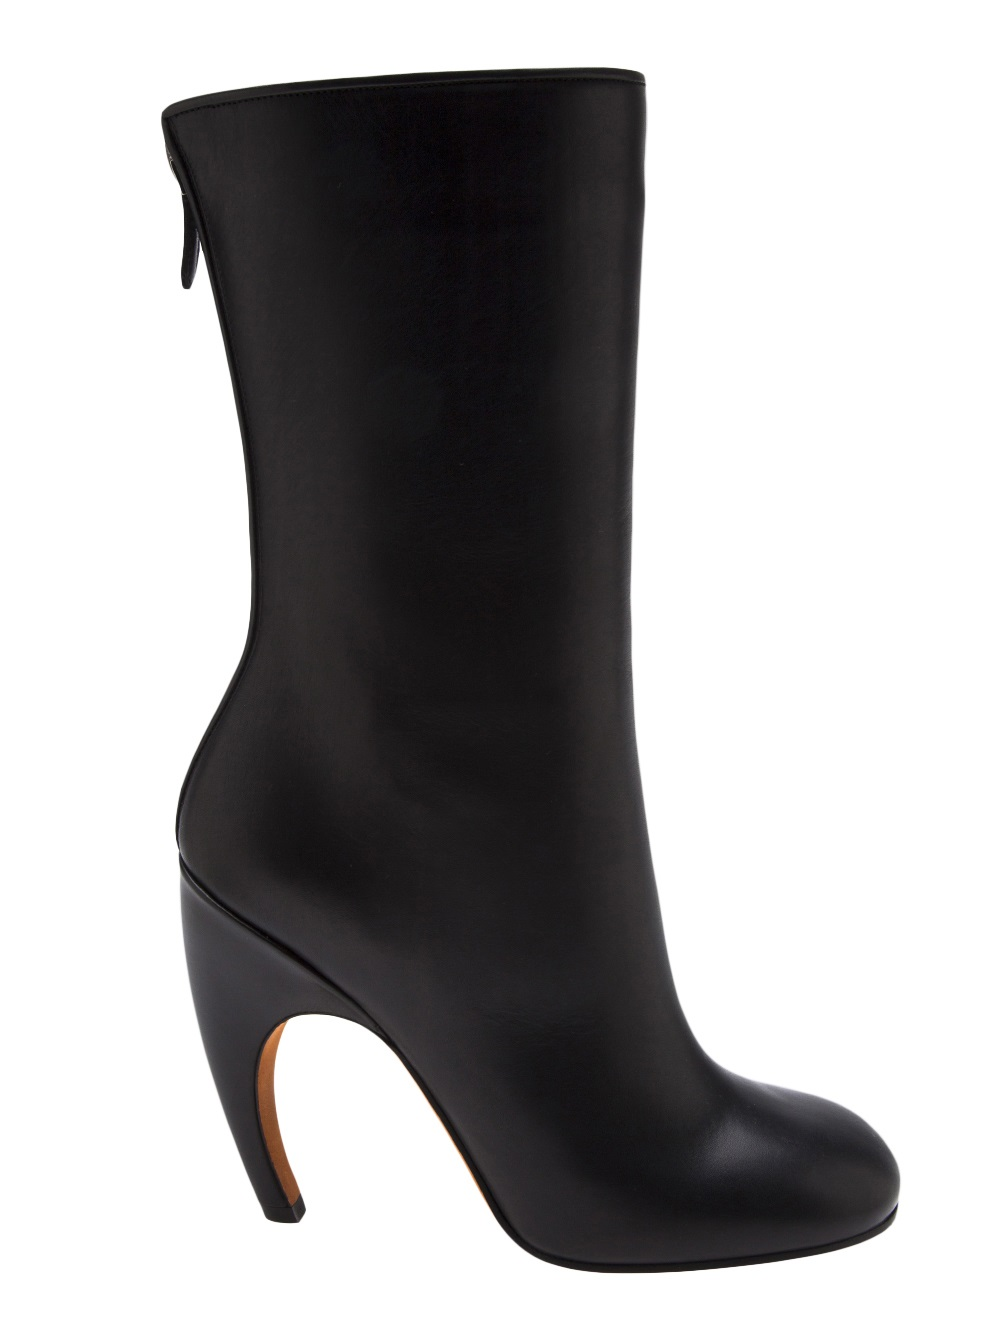 Givenchy Curved Heel Boot in Black